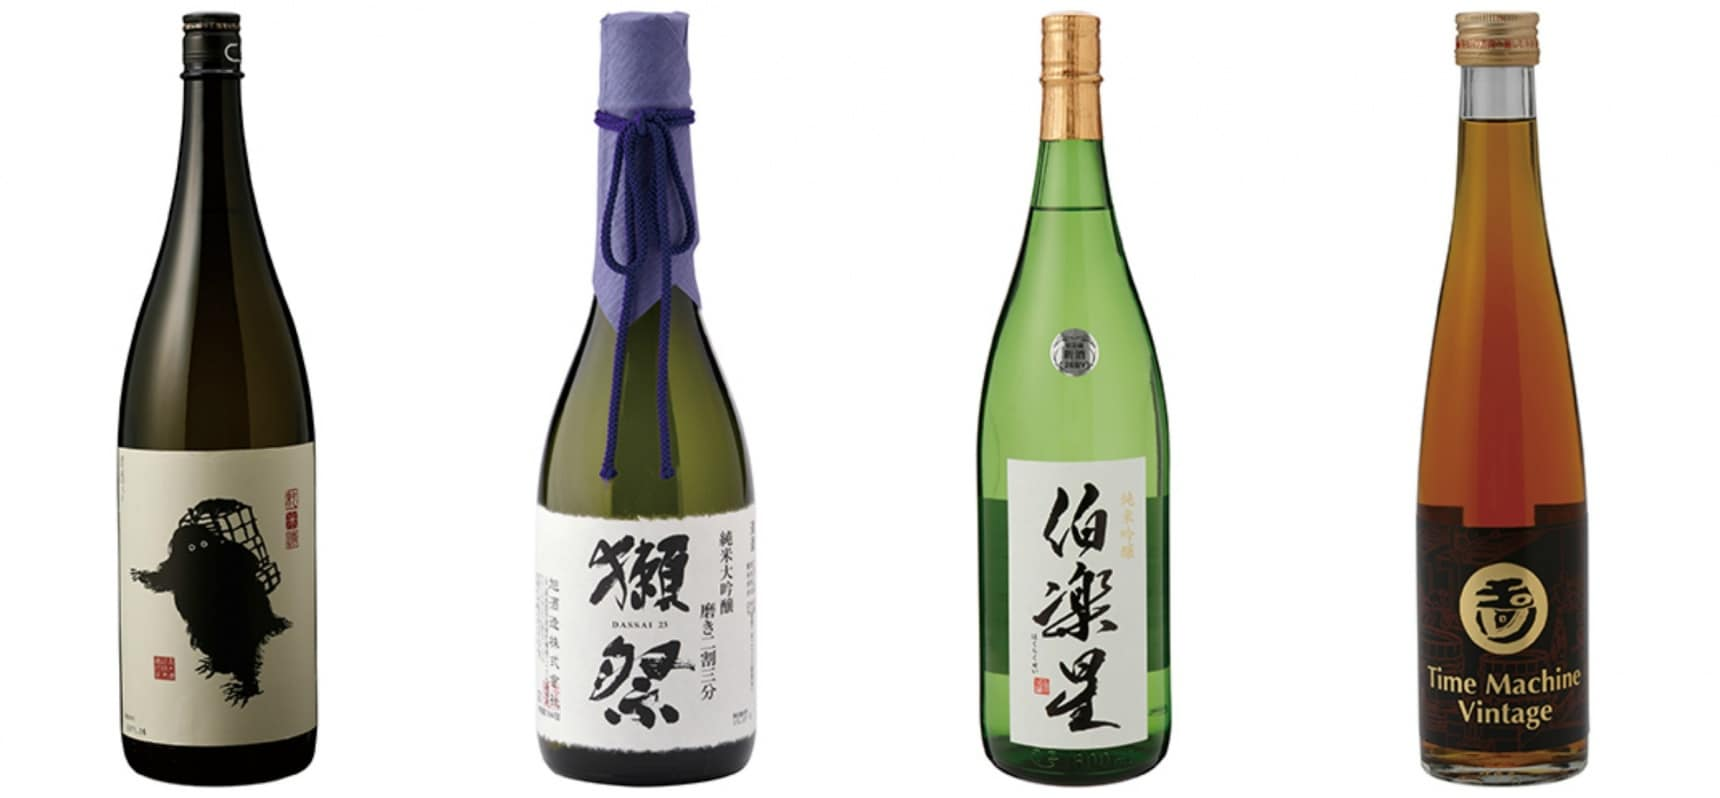 A Great Selection of Sake from Across Japan